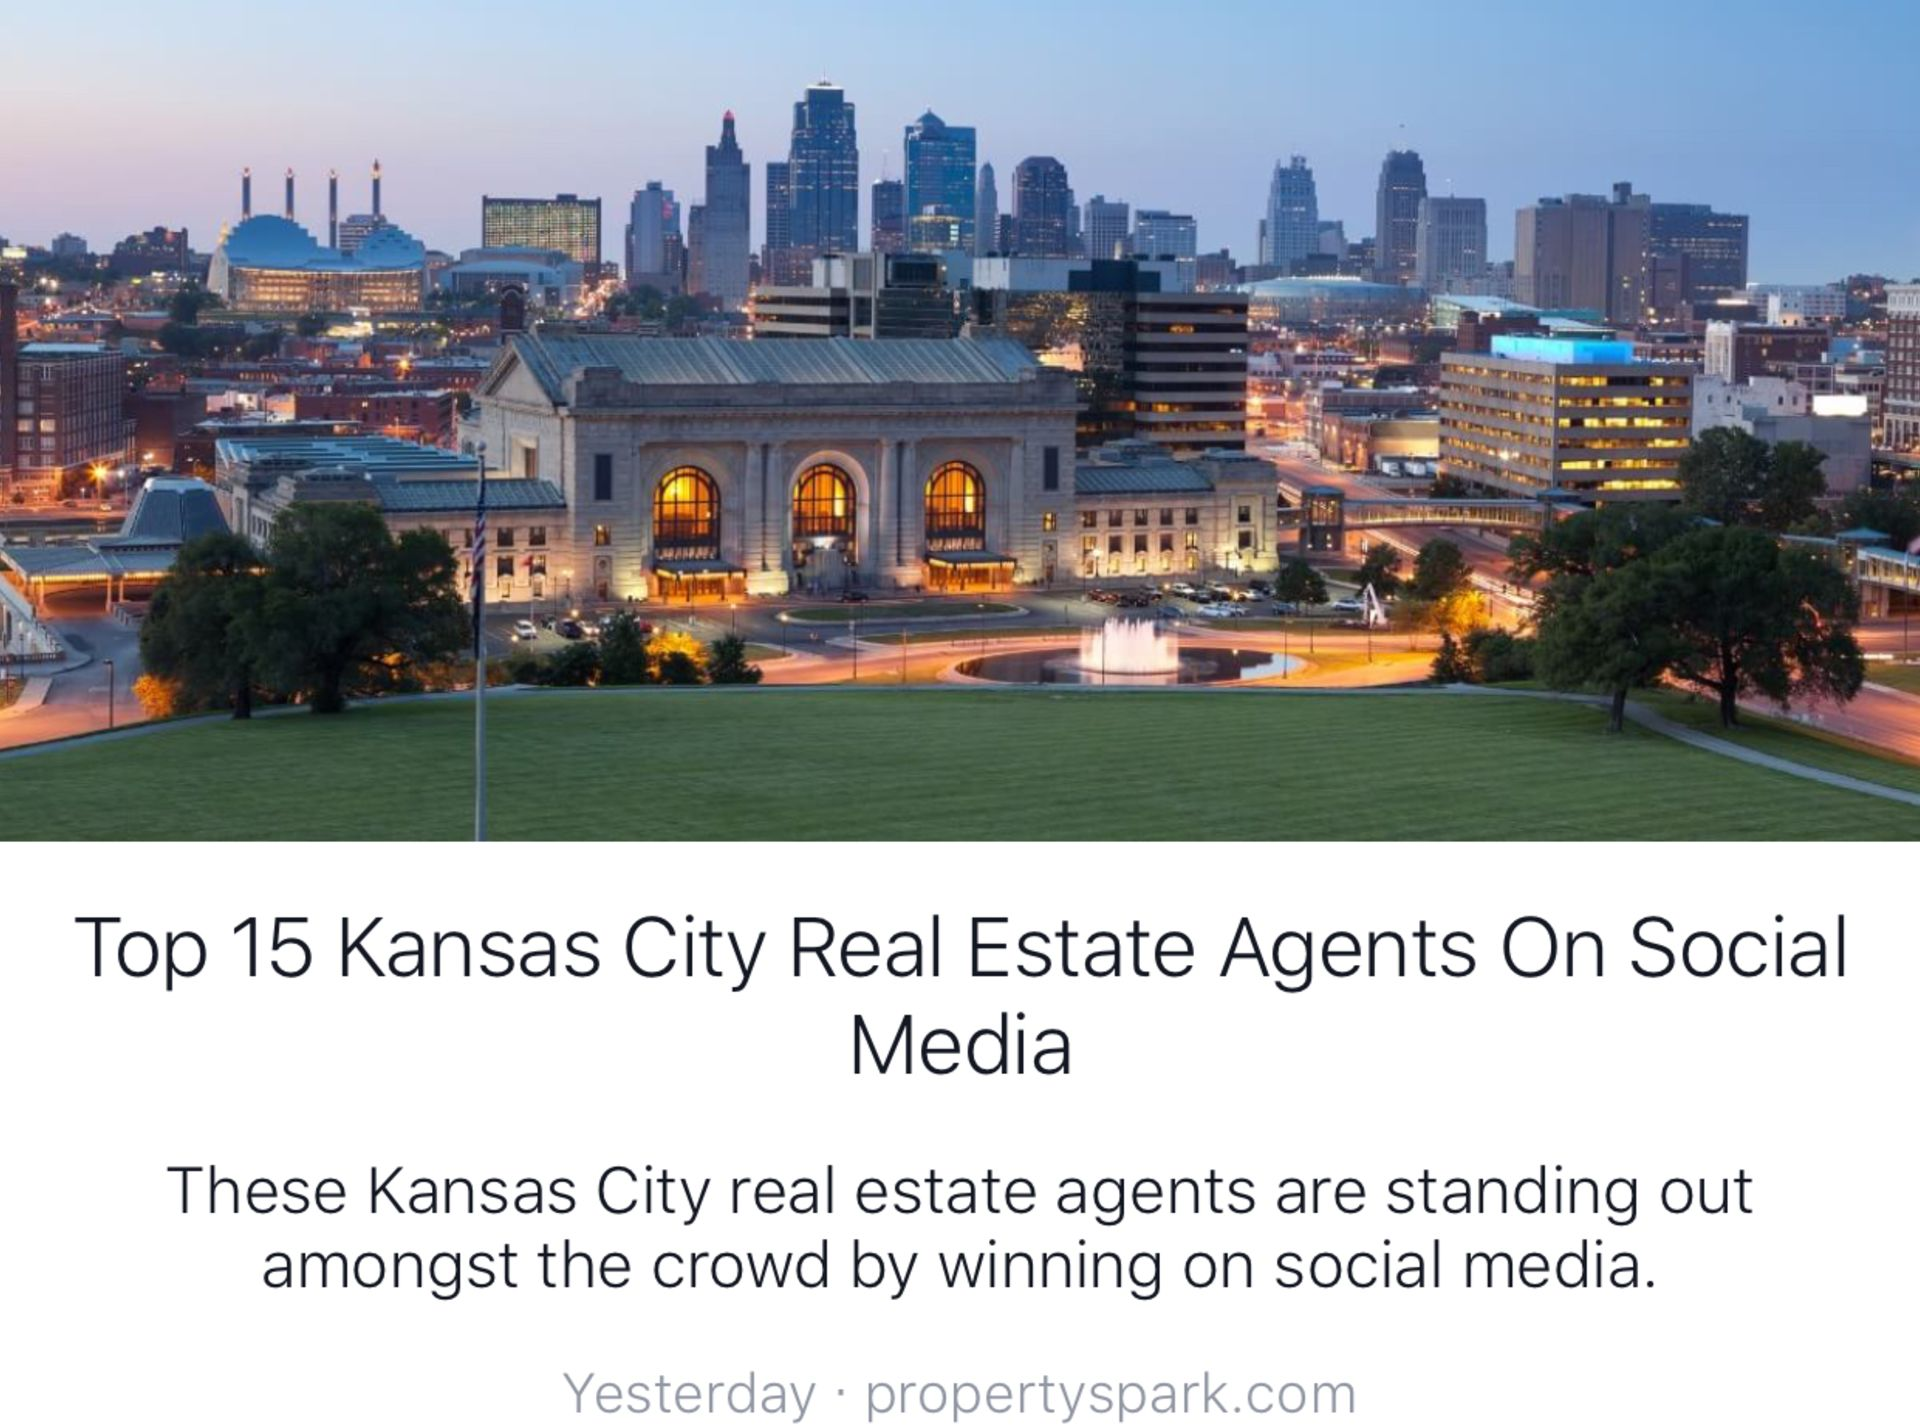 HOLLY MICHAEL #5 among Kansas City Real Estate Agents on Social Media